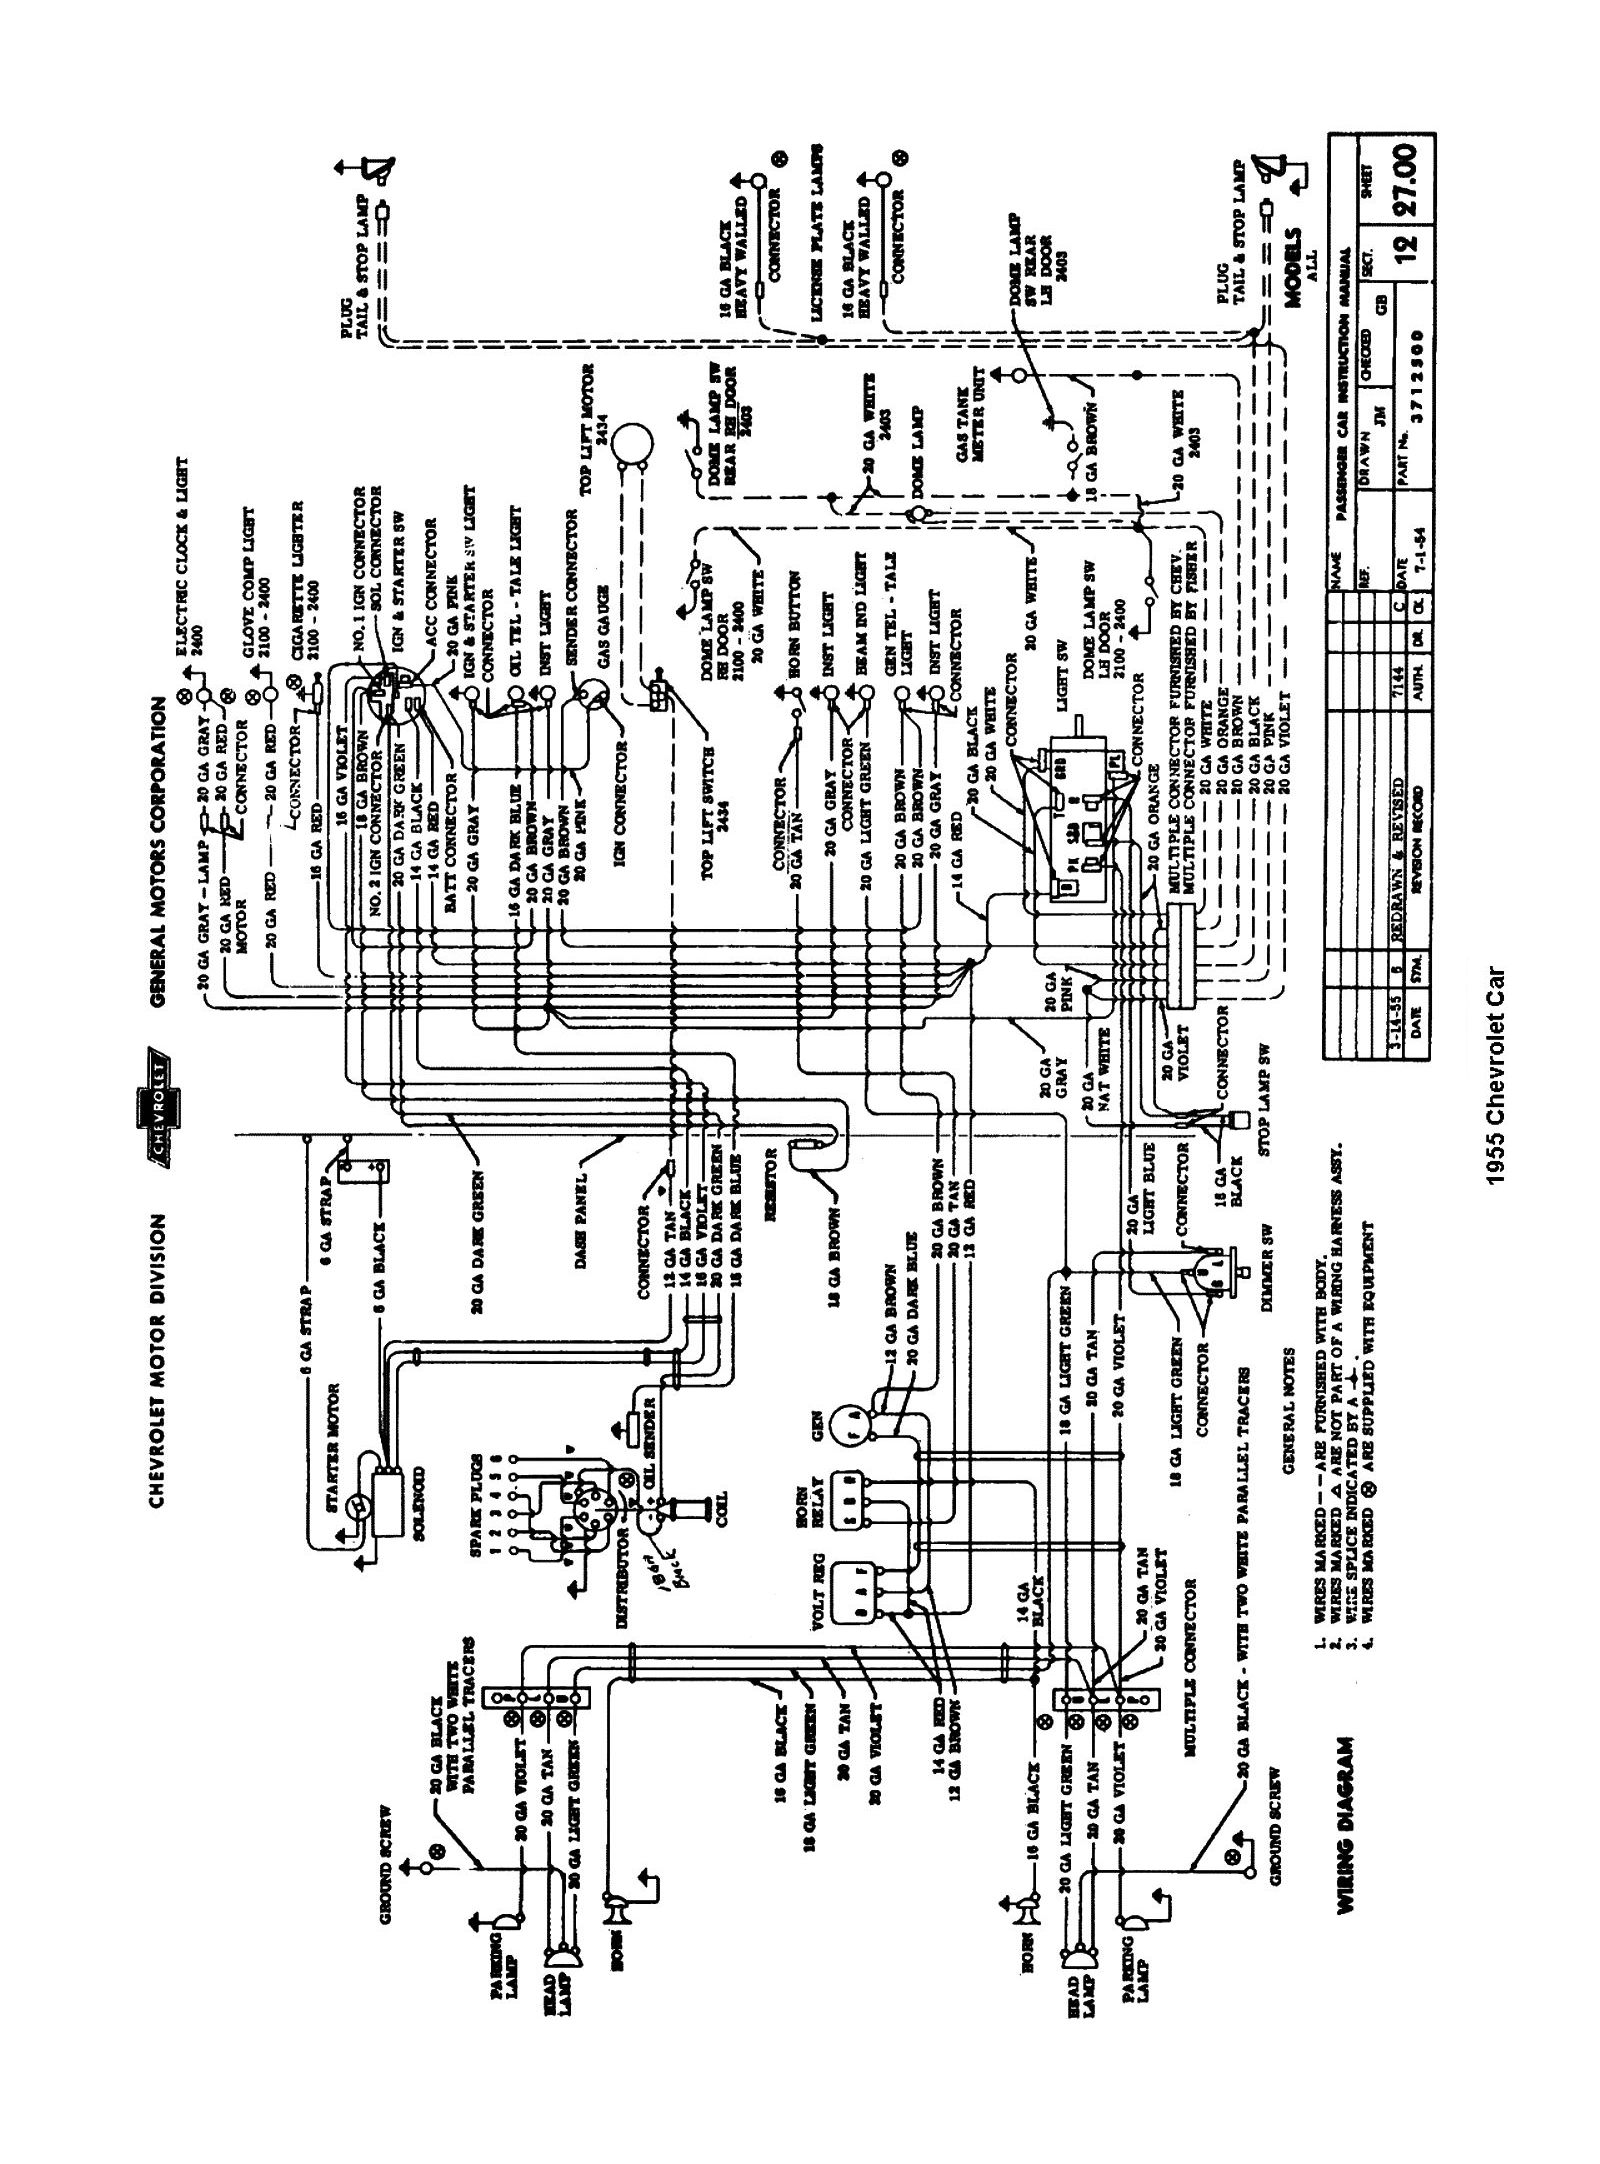 55car1 shop wiring diagram flat wiring diagram \u2022 wiring diagrams j 1967 Chevelle Wiring Diagram at soozxer.org